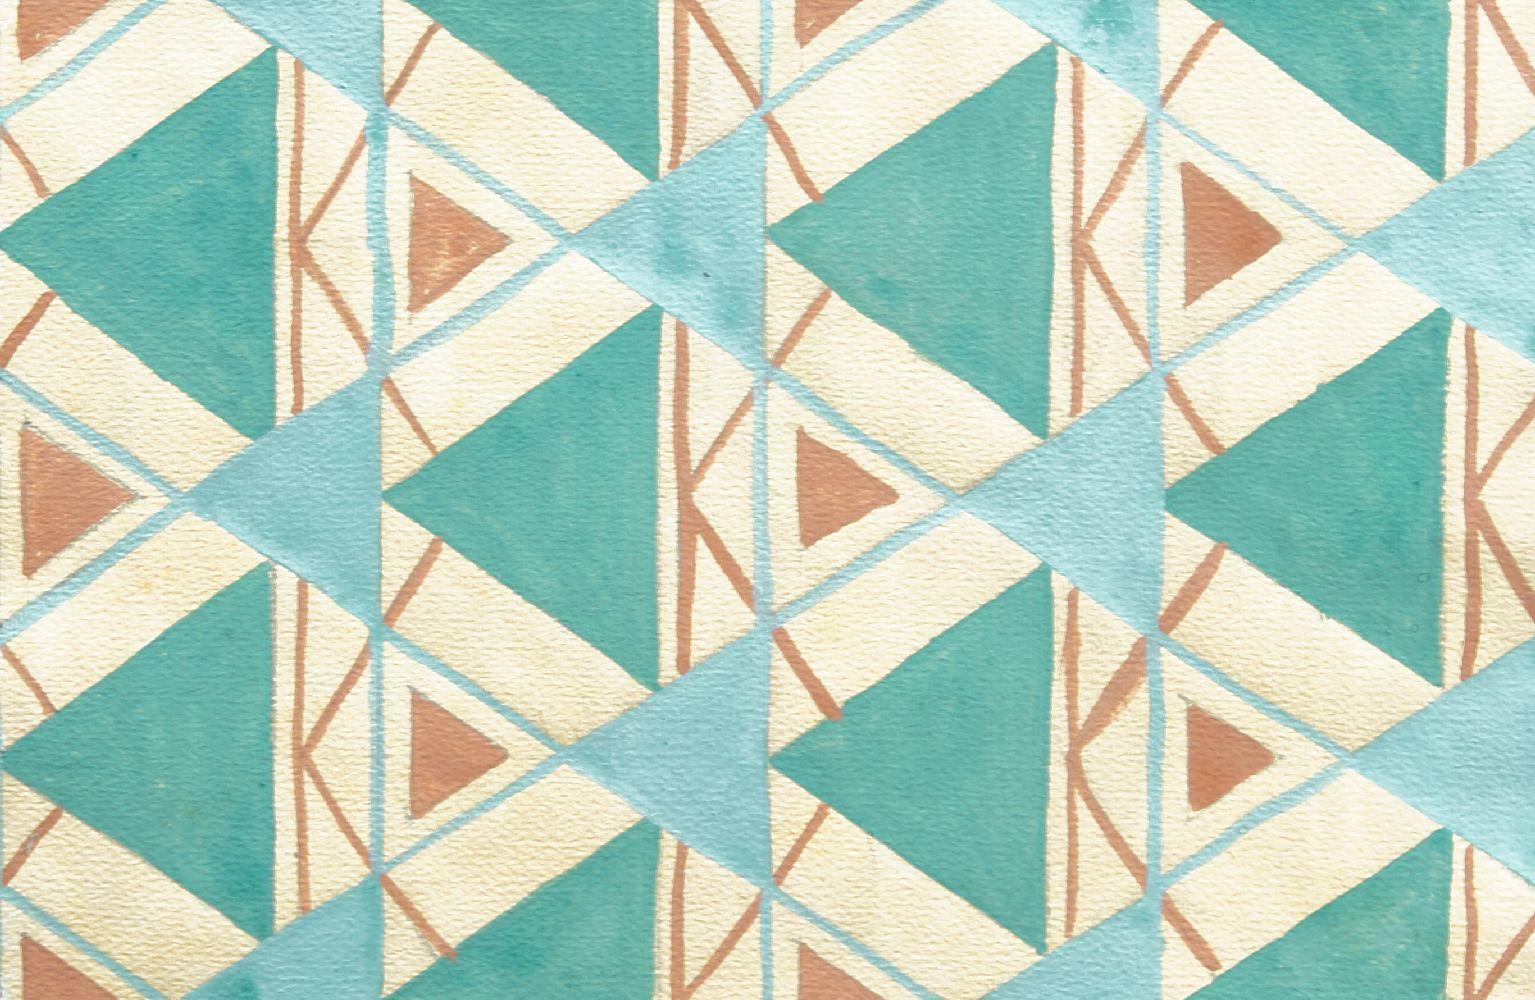 Genevieve Moreau, French School, early 20th century- Untitled abstract patterns; gouache, three, two - Image 2 of 3